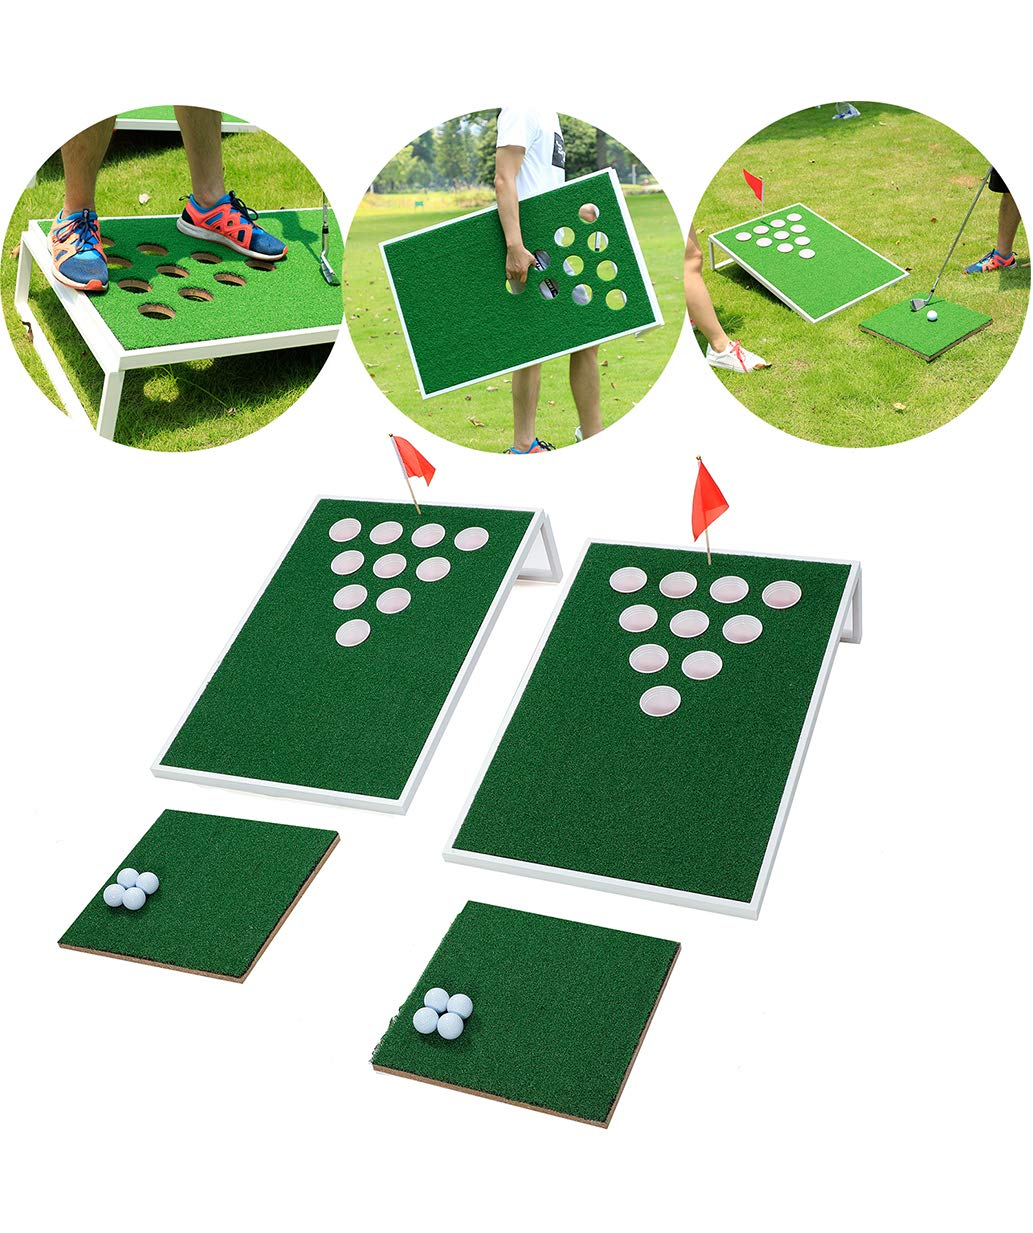 SPRAWL Beer Pong Cornhole Golf Chipping - 2 Tragets 2 Chipping Mats 8 Golf Balls - Beach Golf Backyard Practice Games Golf Hole by SPRAWL